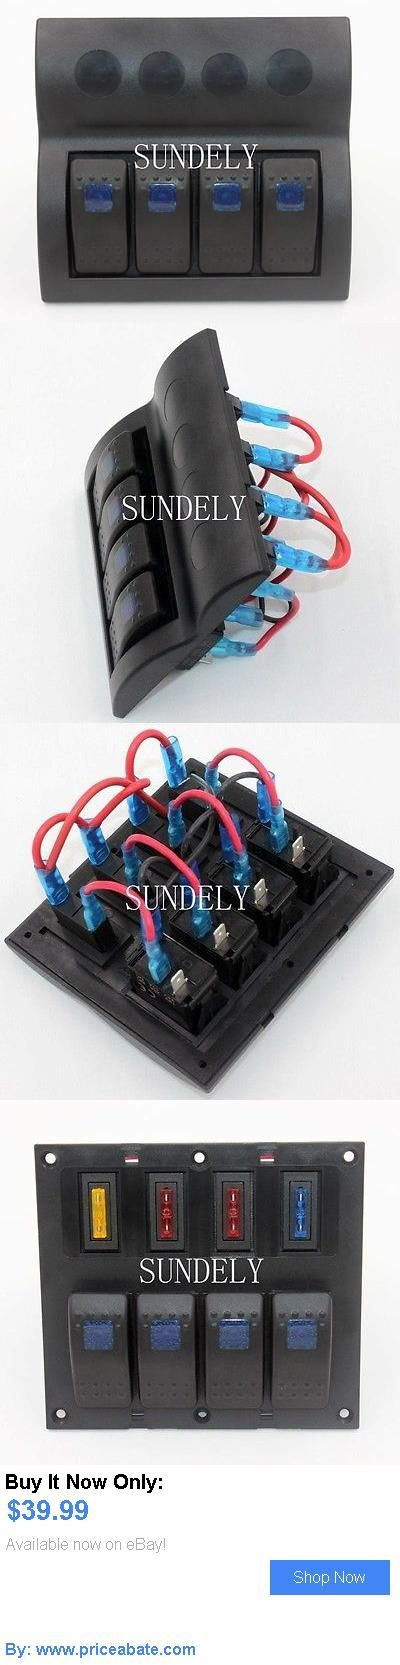 boat parts: 4 Gang Black Deluxe Led Rocker Waterproof Switch Panel And Auto Fuse - Boat/Marine BUY IT NOW ONLY: $39.99 #priceabateboatparts OR #priceabate